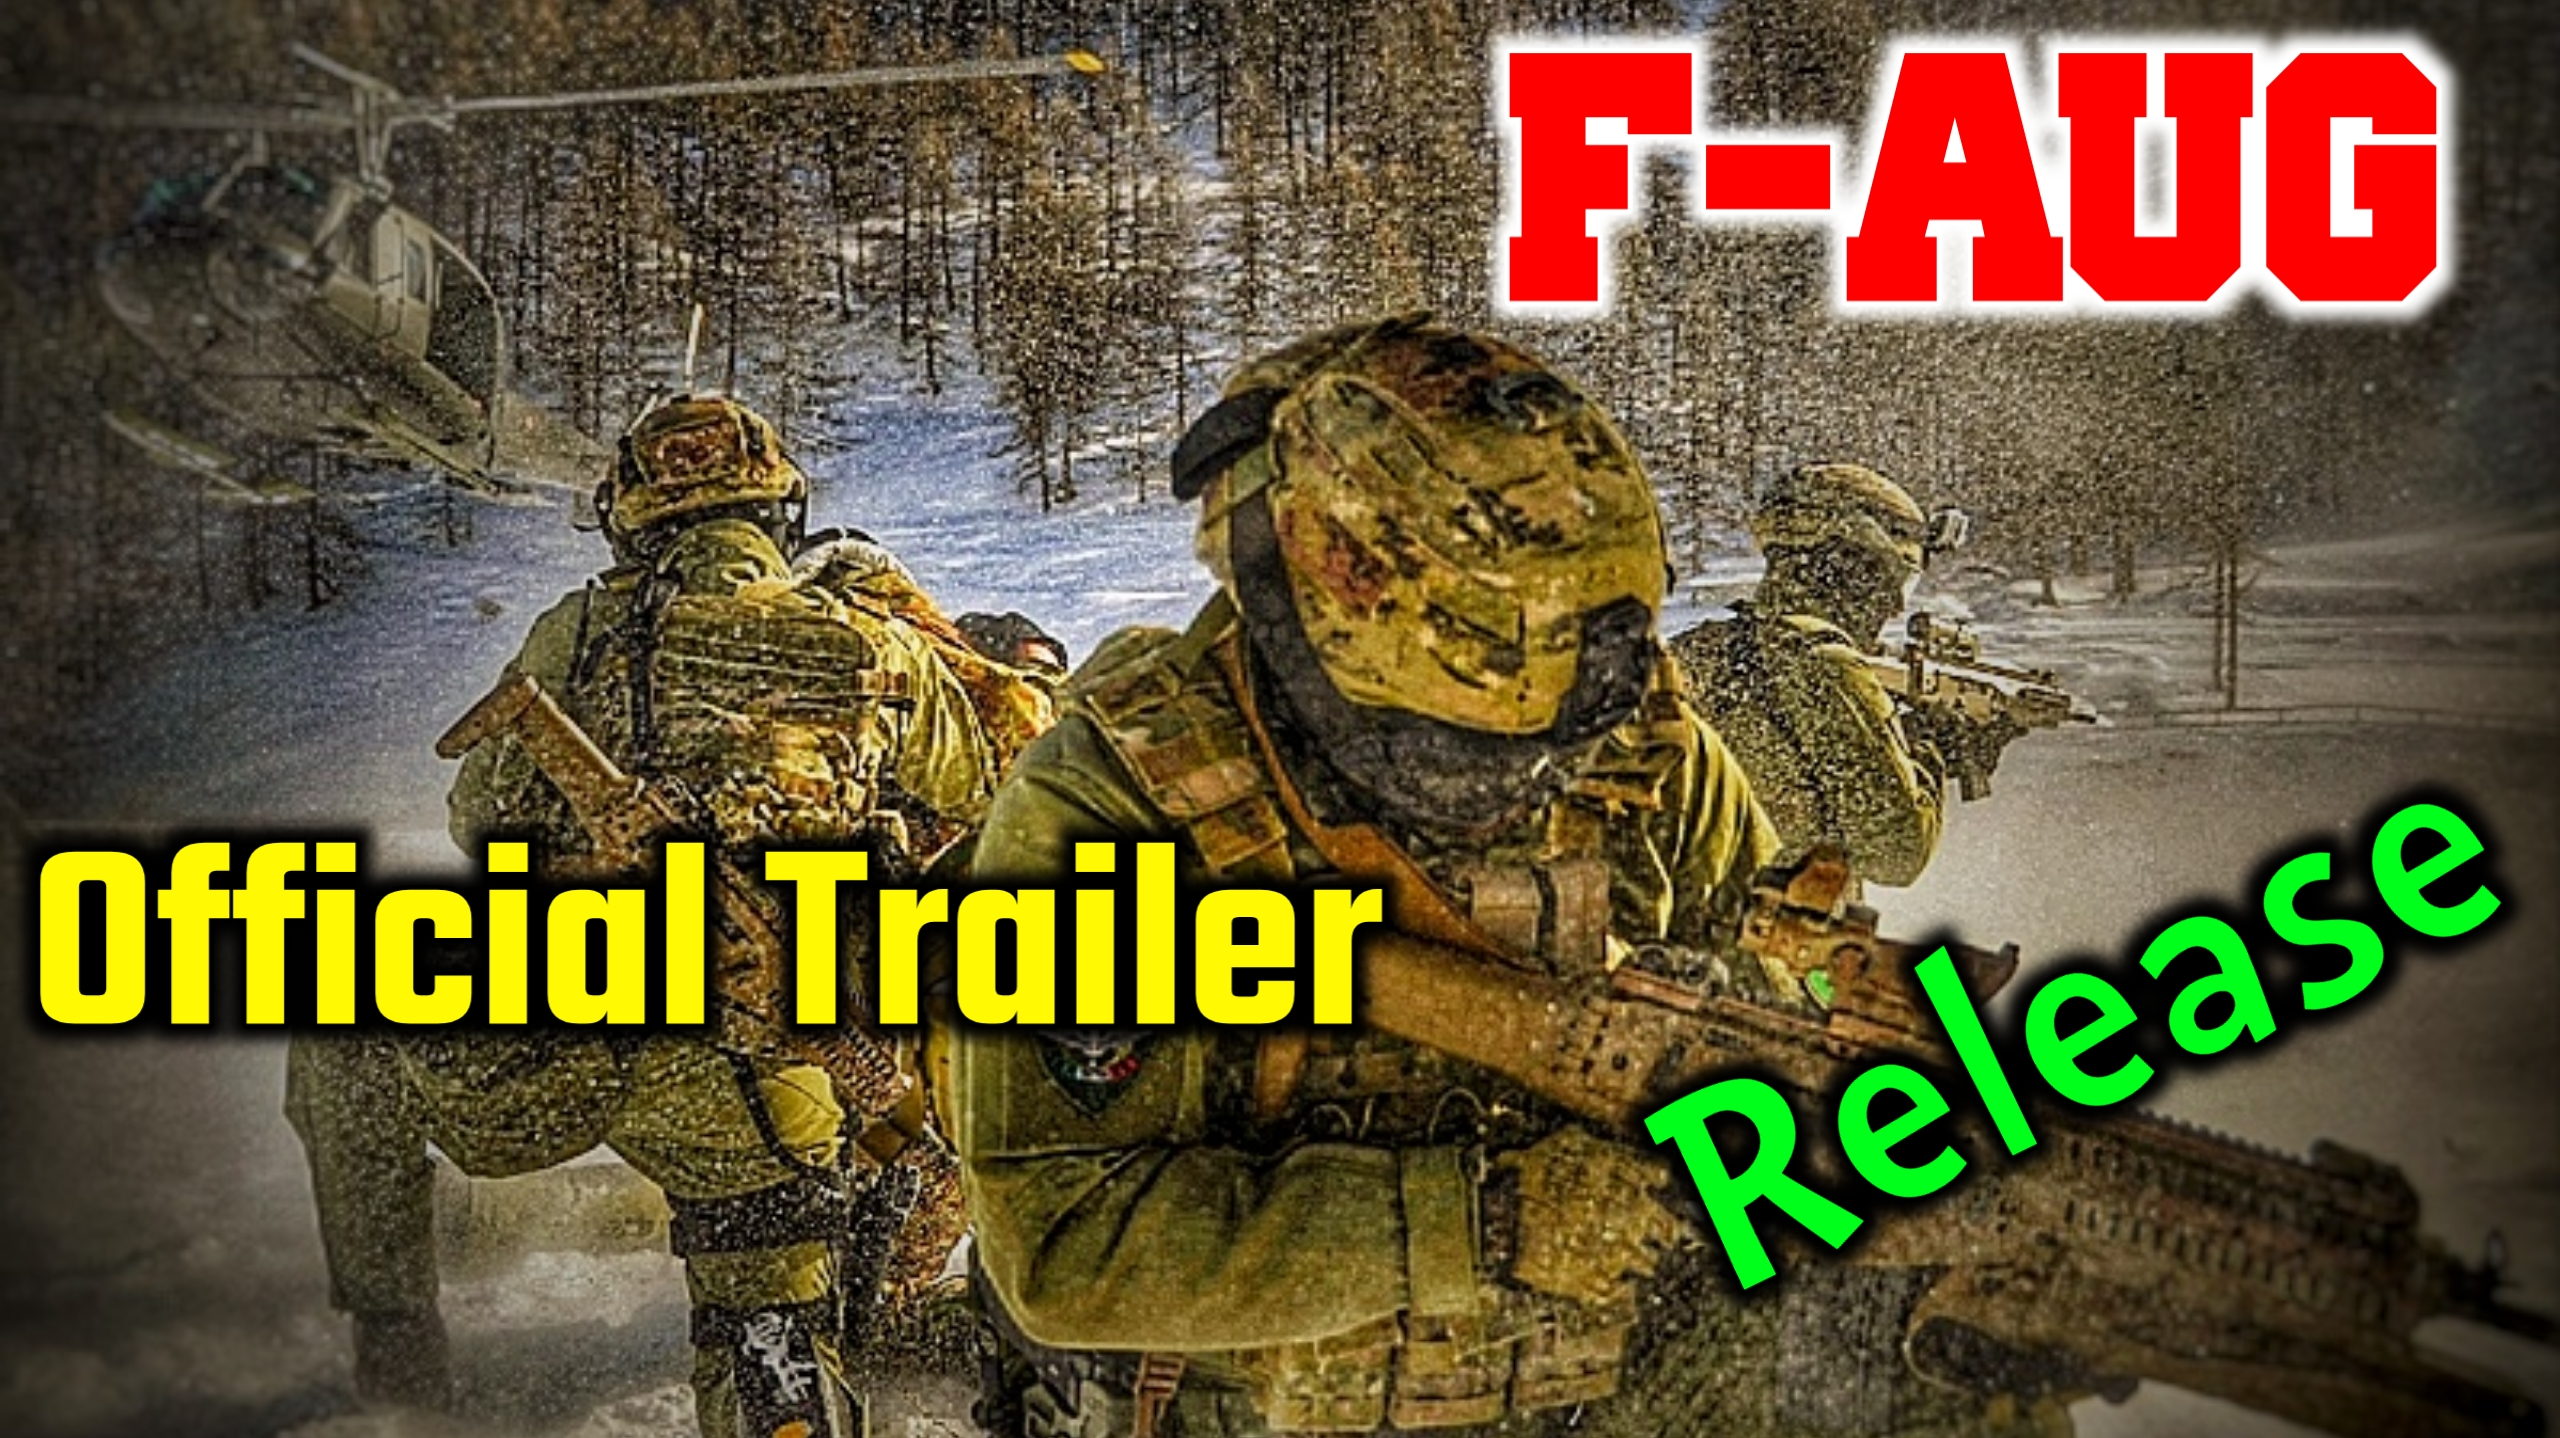 FAU-G Official Trailer And Official Release Date Of F-AUG..